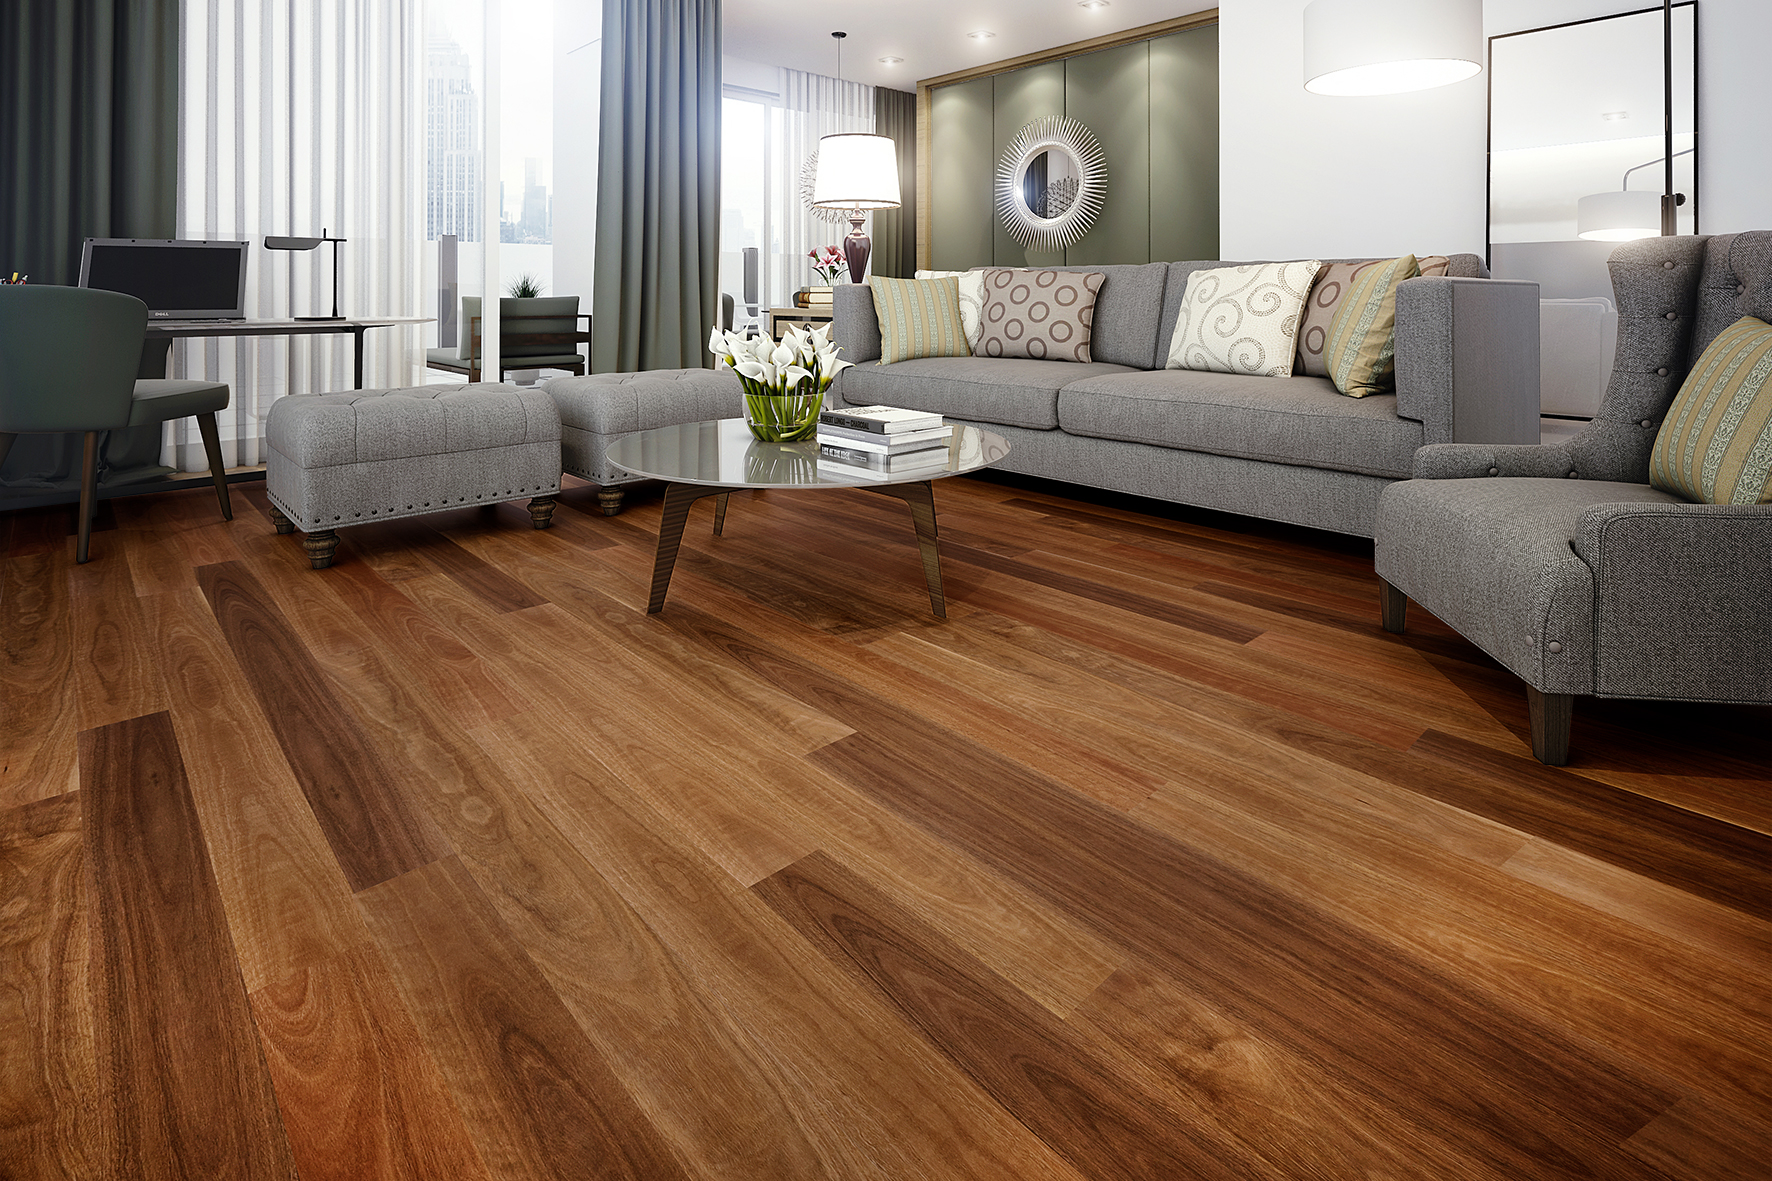 Engineered Timber Flooring Sydney Melbourne Terra Mater Floors